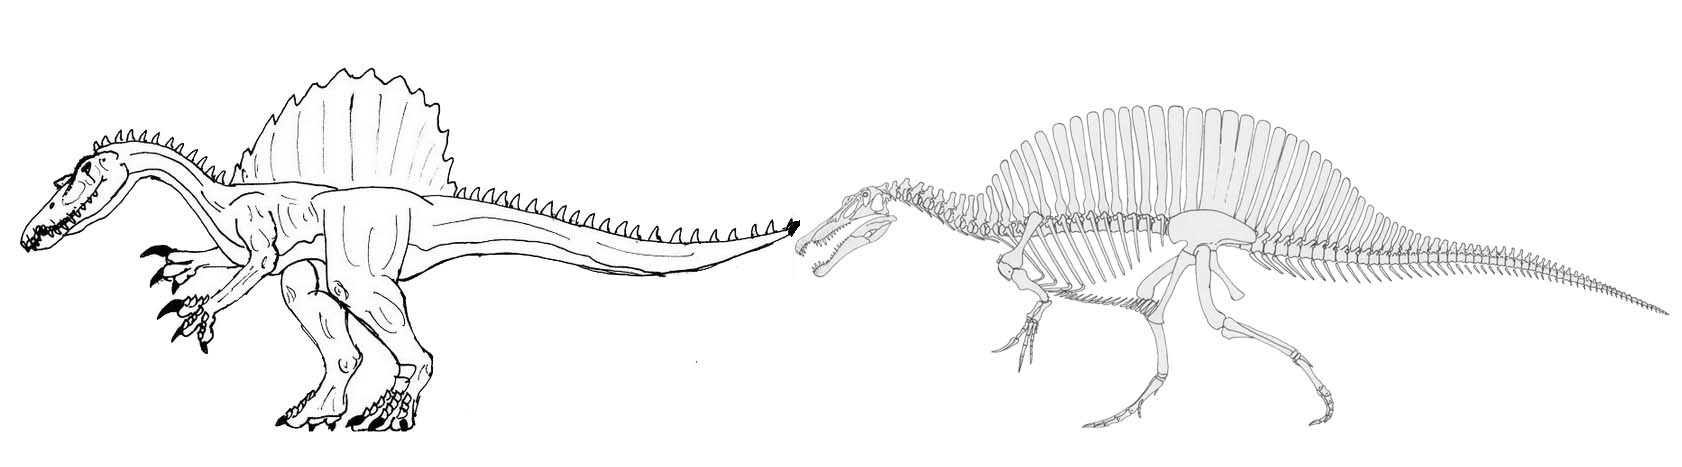 Spinosaurus skeleton coloring and drawing page